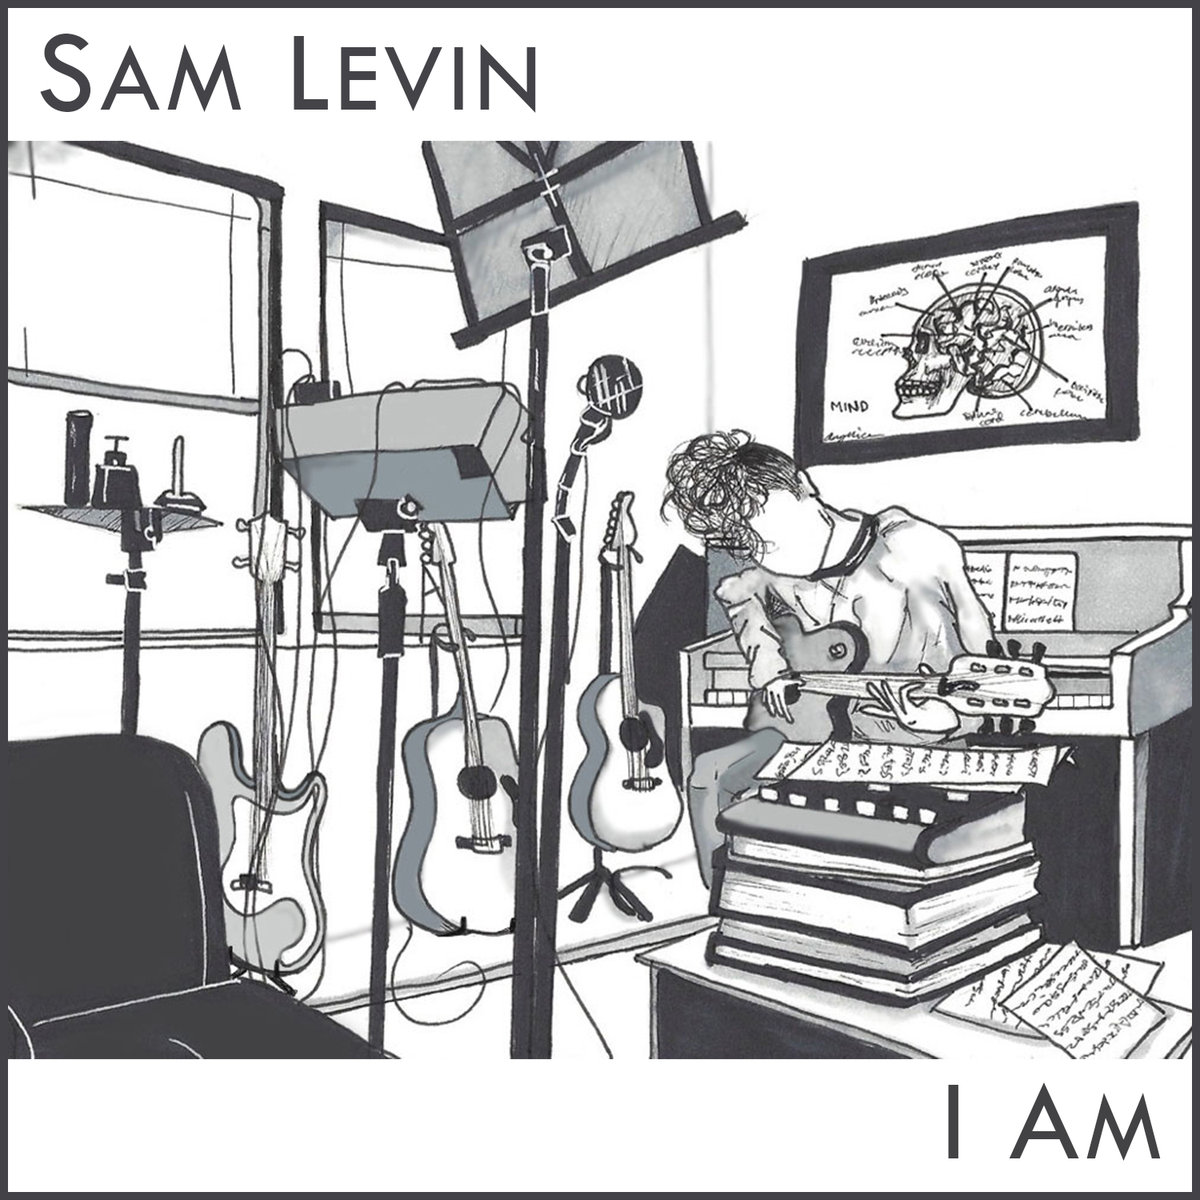 Sam Levin's cover art for 'I Am'